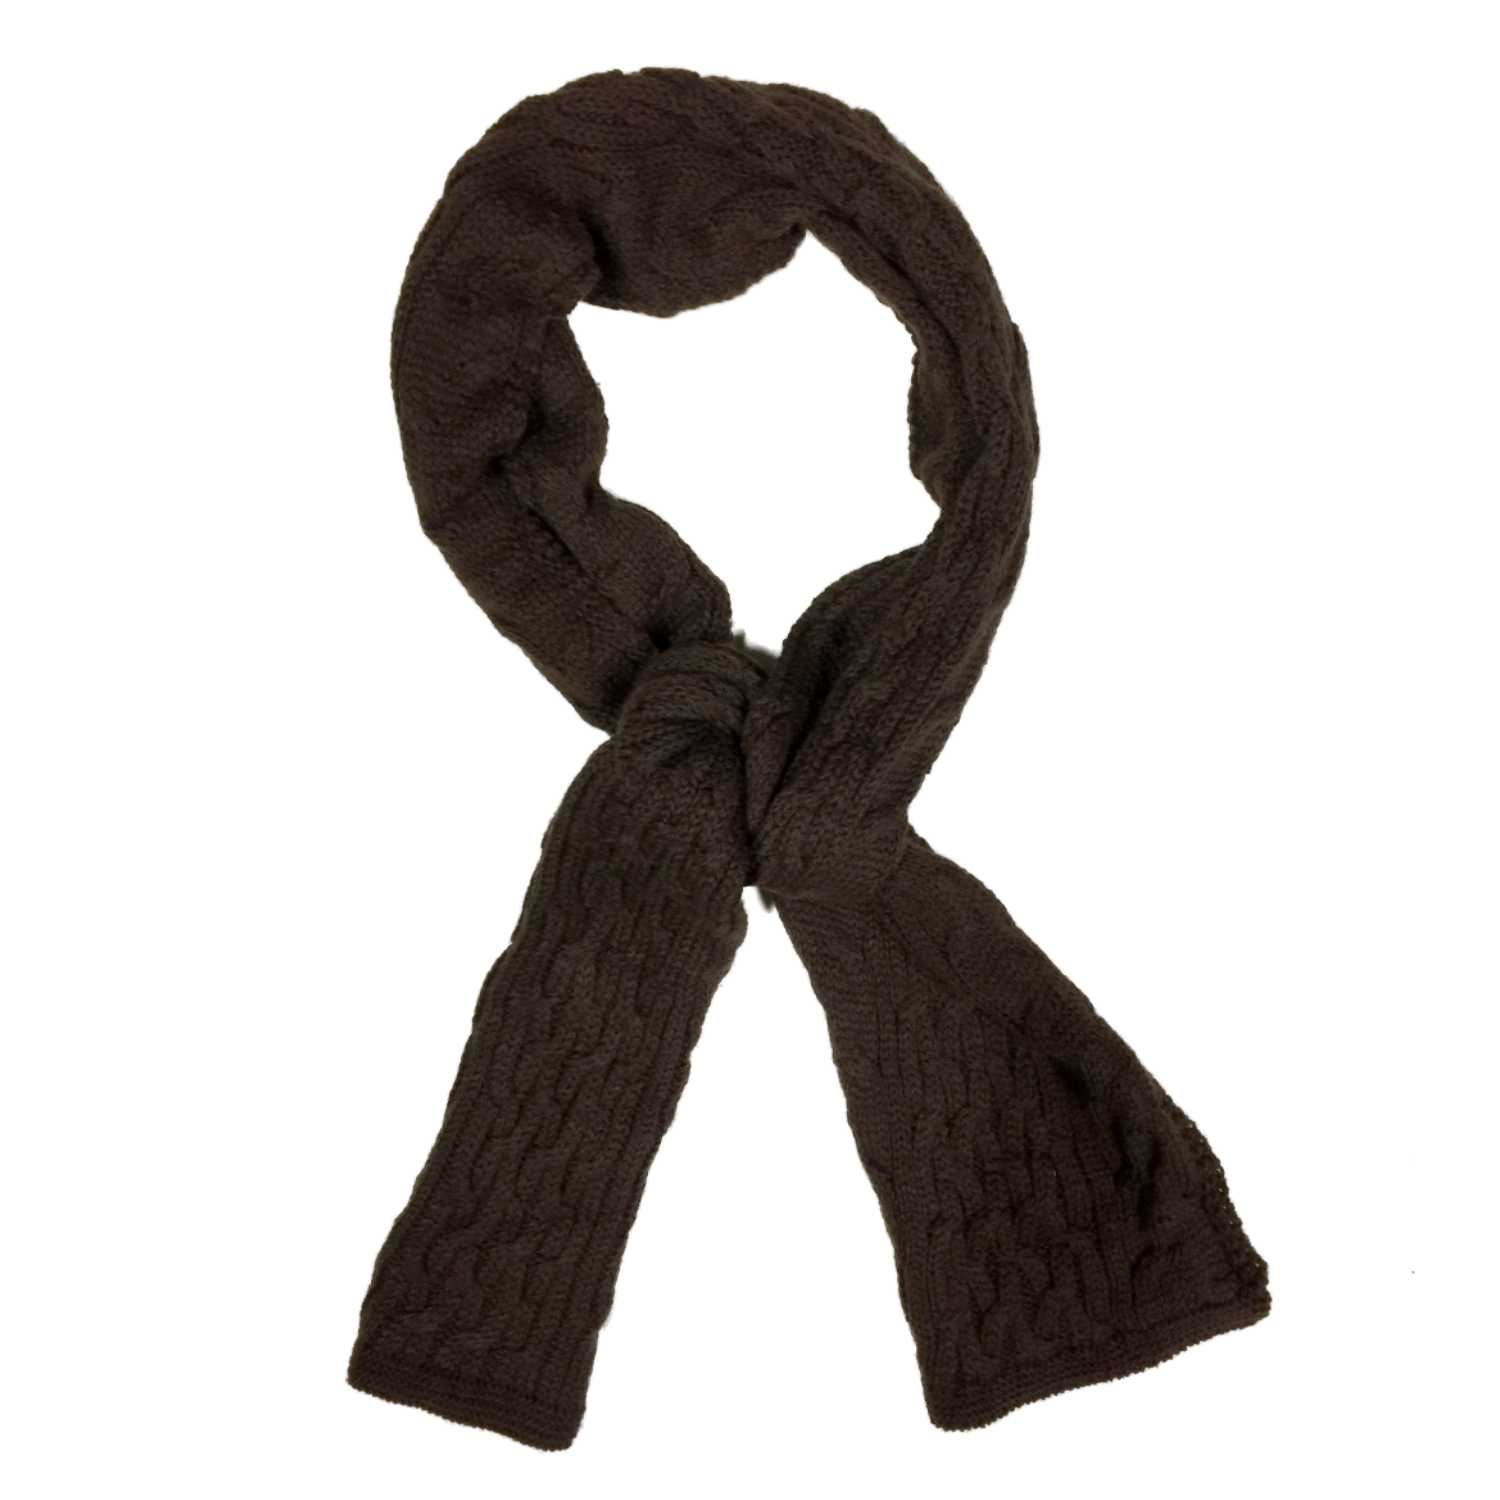 Fownes Womens Chocolate Brown Cable Knit Winter Neck Scarf